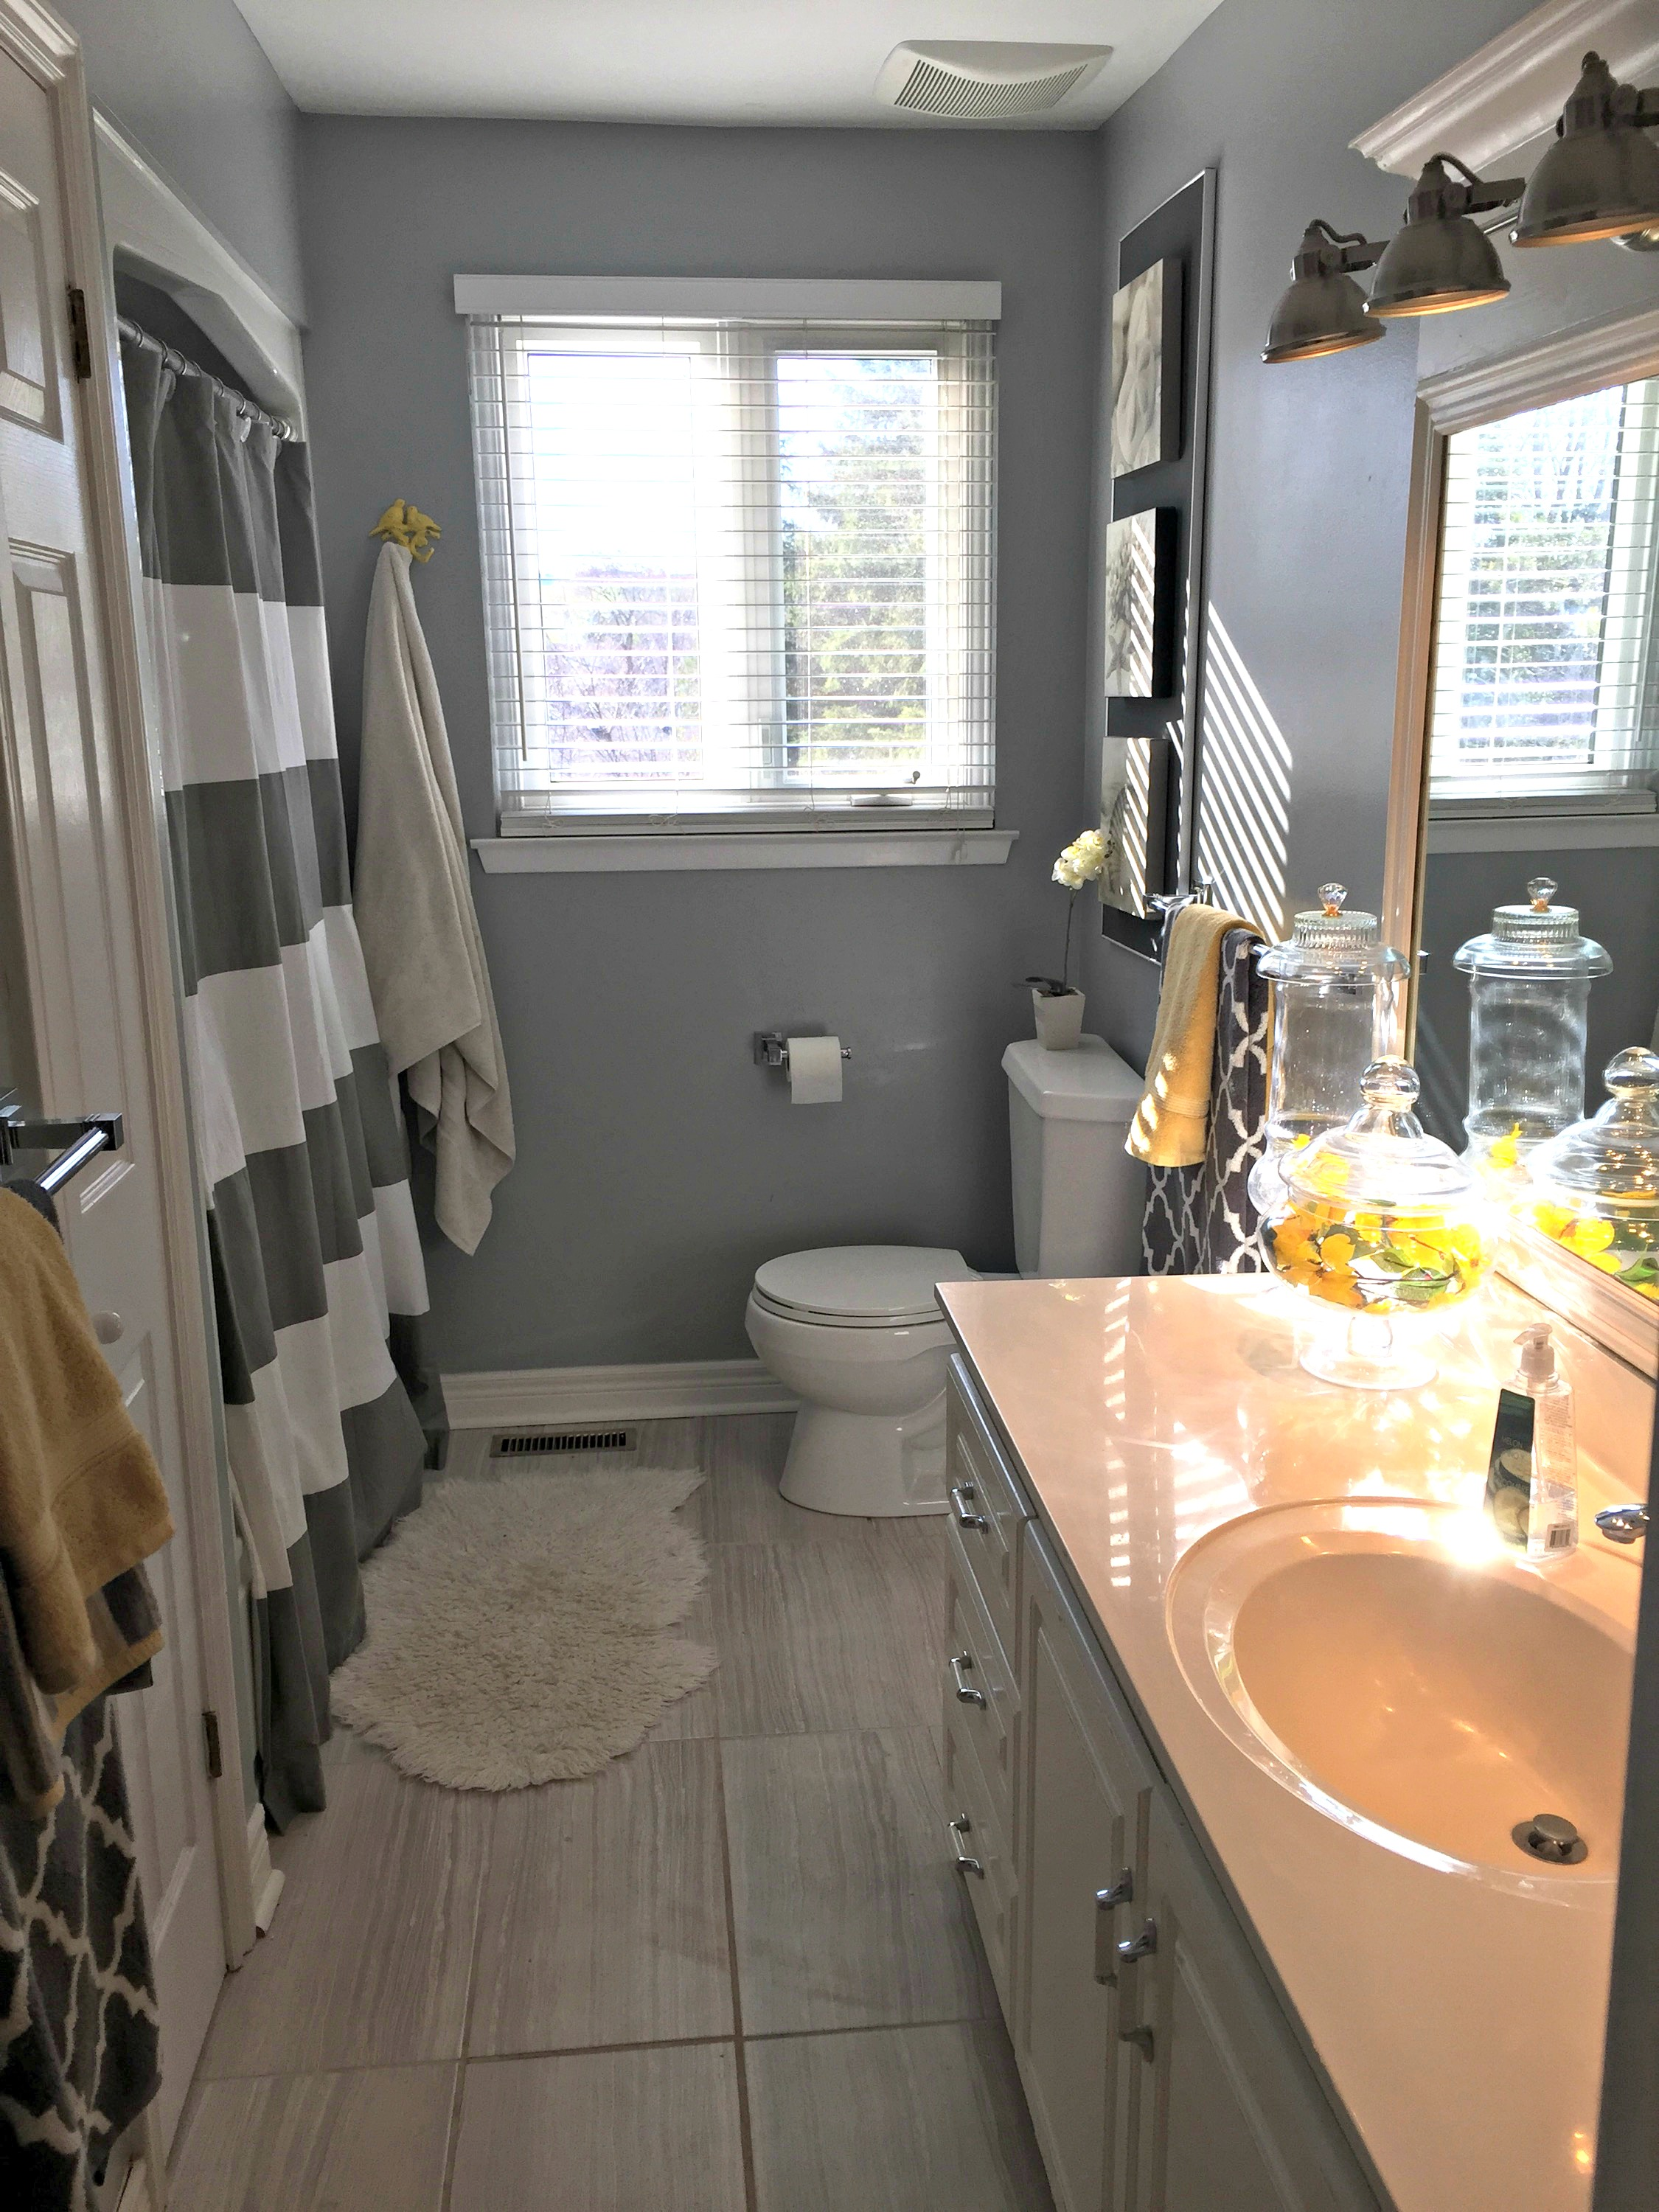 kids bathroom remodel see how to transform an entire space using new flooring paint